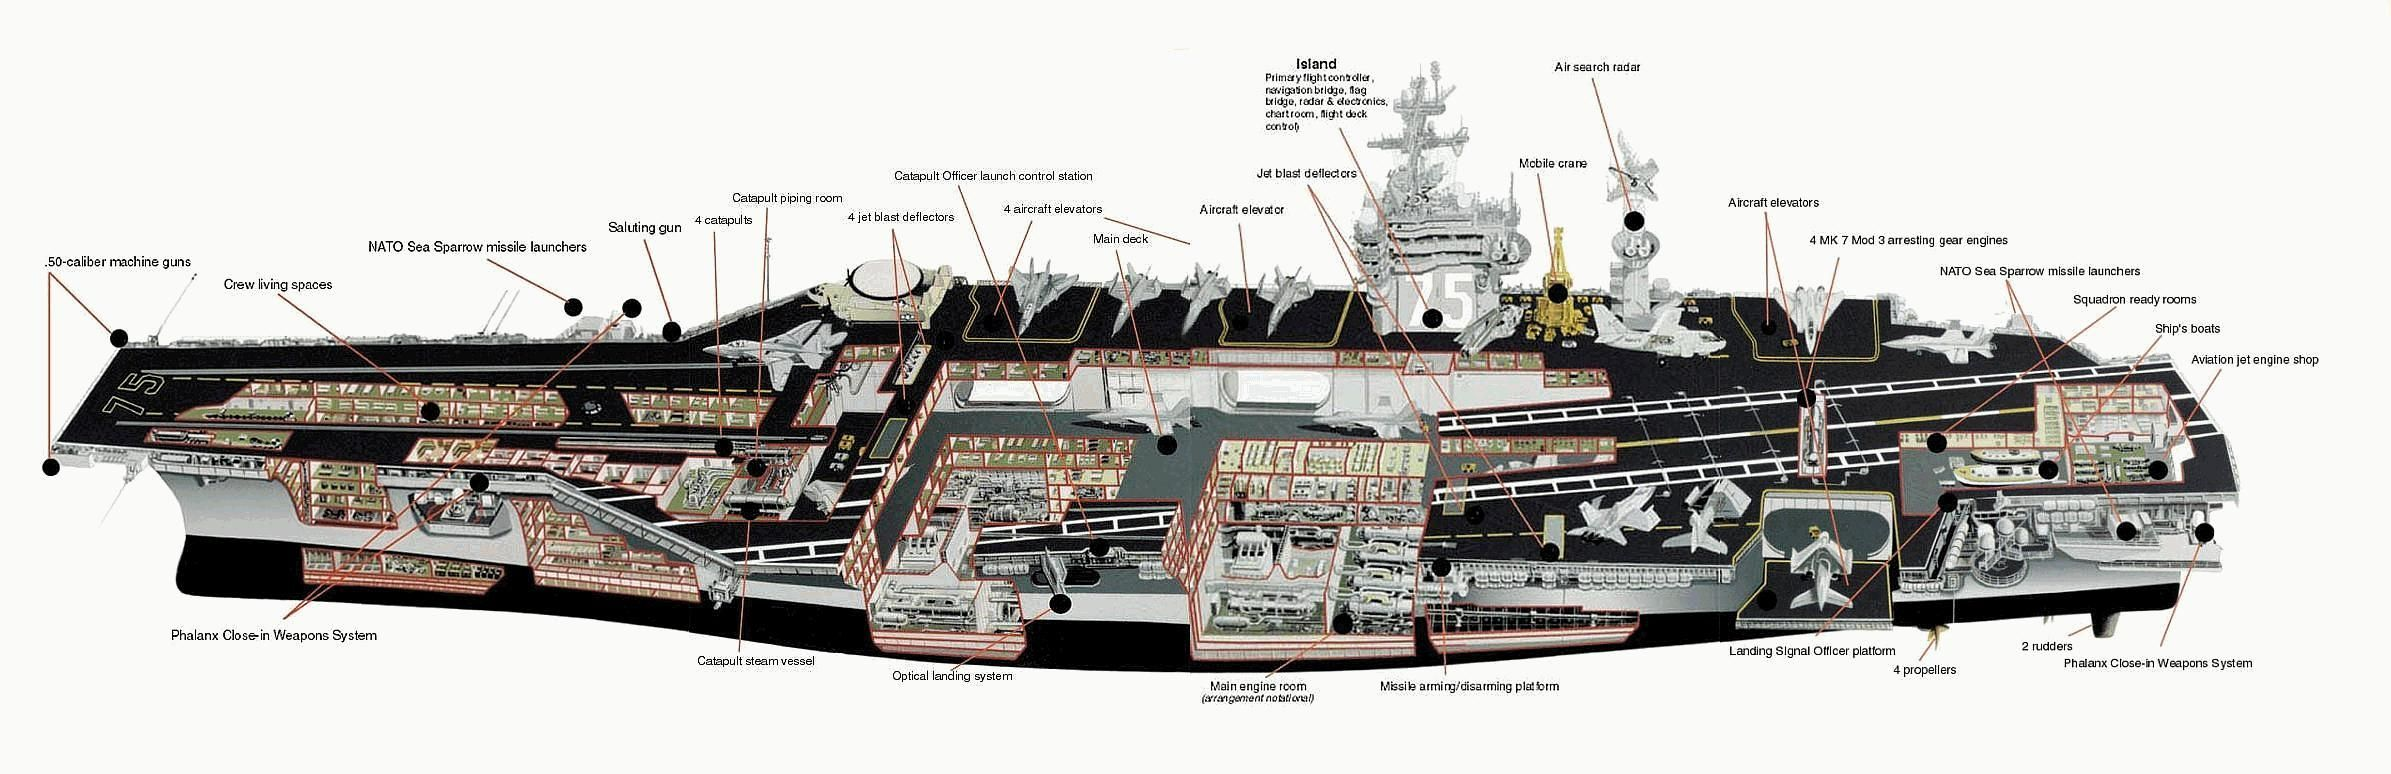 gerald r ford aircraft carrier cvn 78 ships pinterest cutaway. Cars Review. Best American Auto & Cars Review